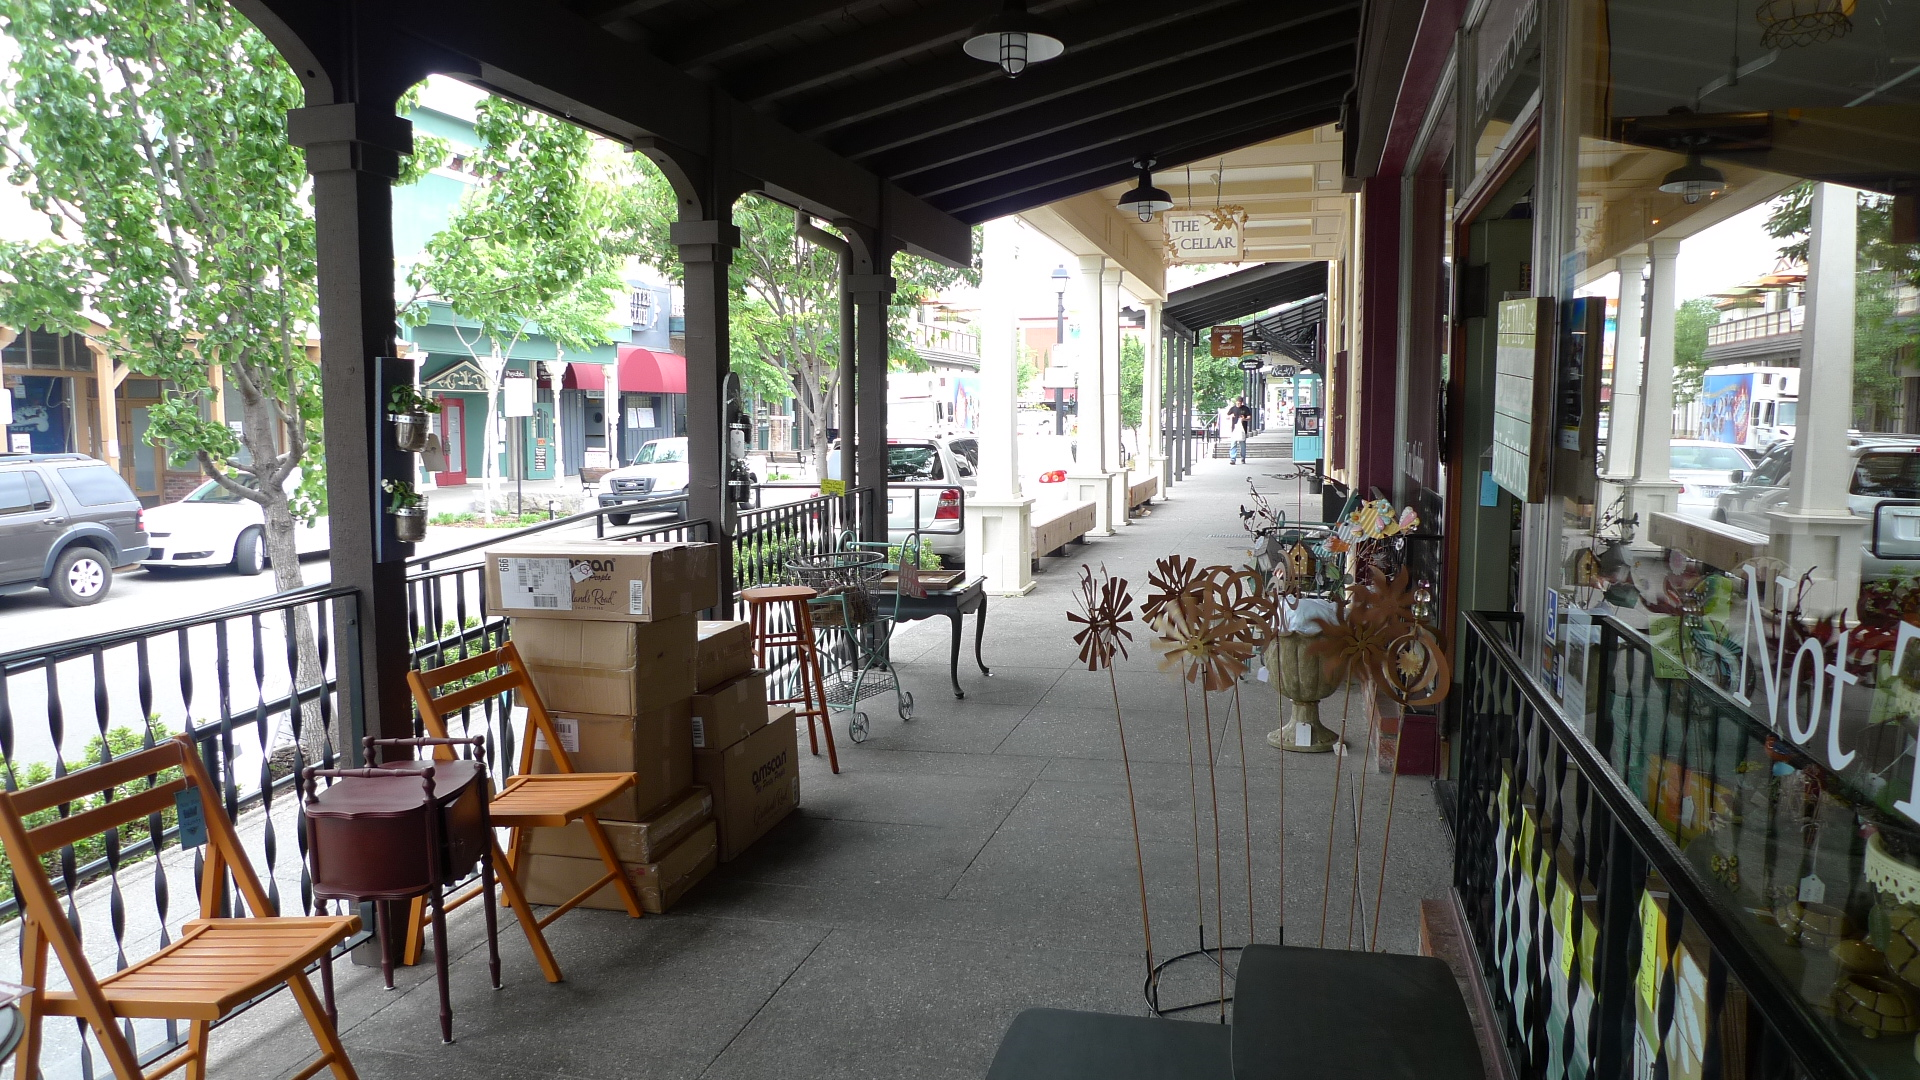 The Folsom Historic District